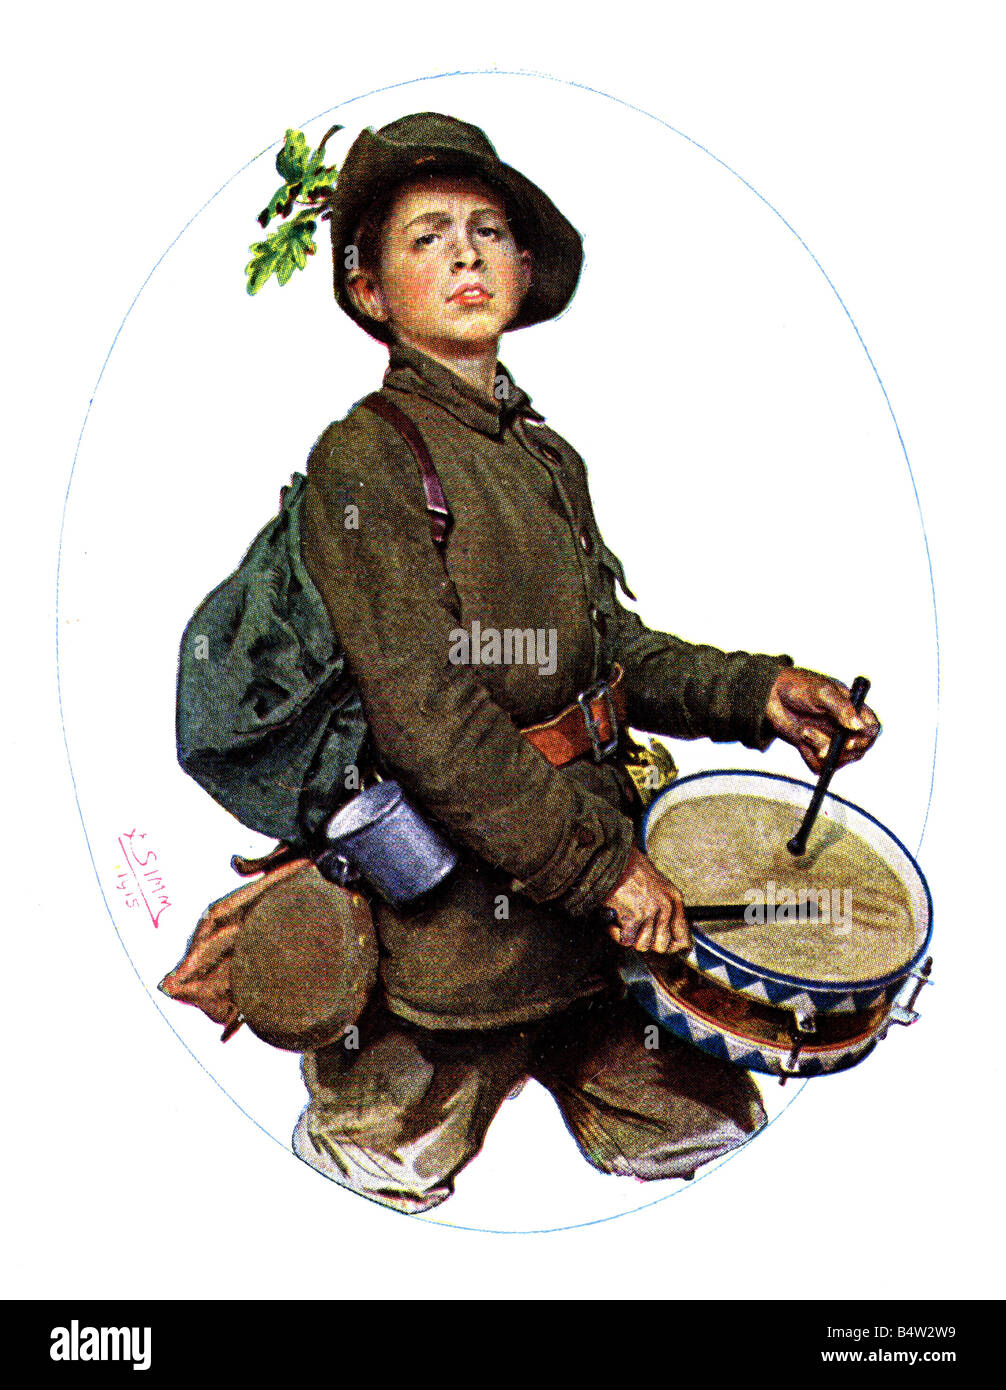 events, First World War / WWI, military postcards, postcard 'Jung-Deutschland' (Young Germany), Munich, - Stock Image